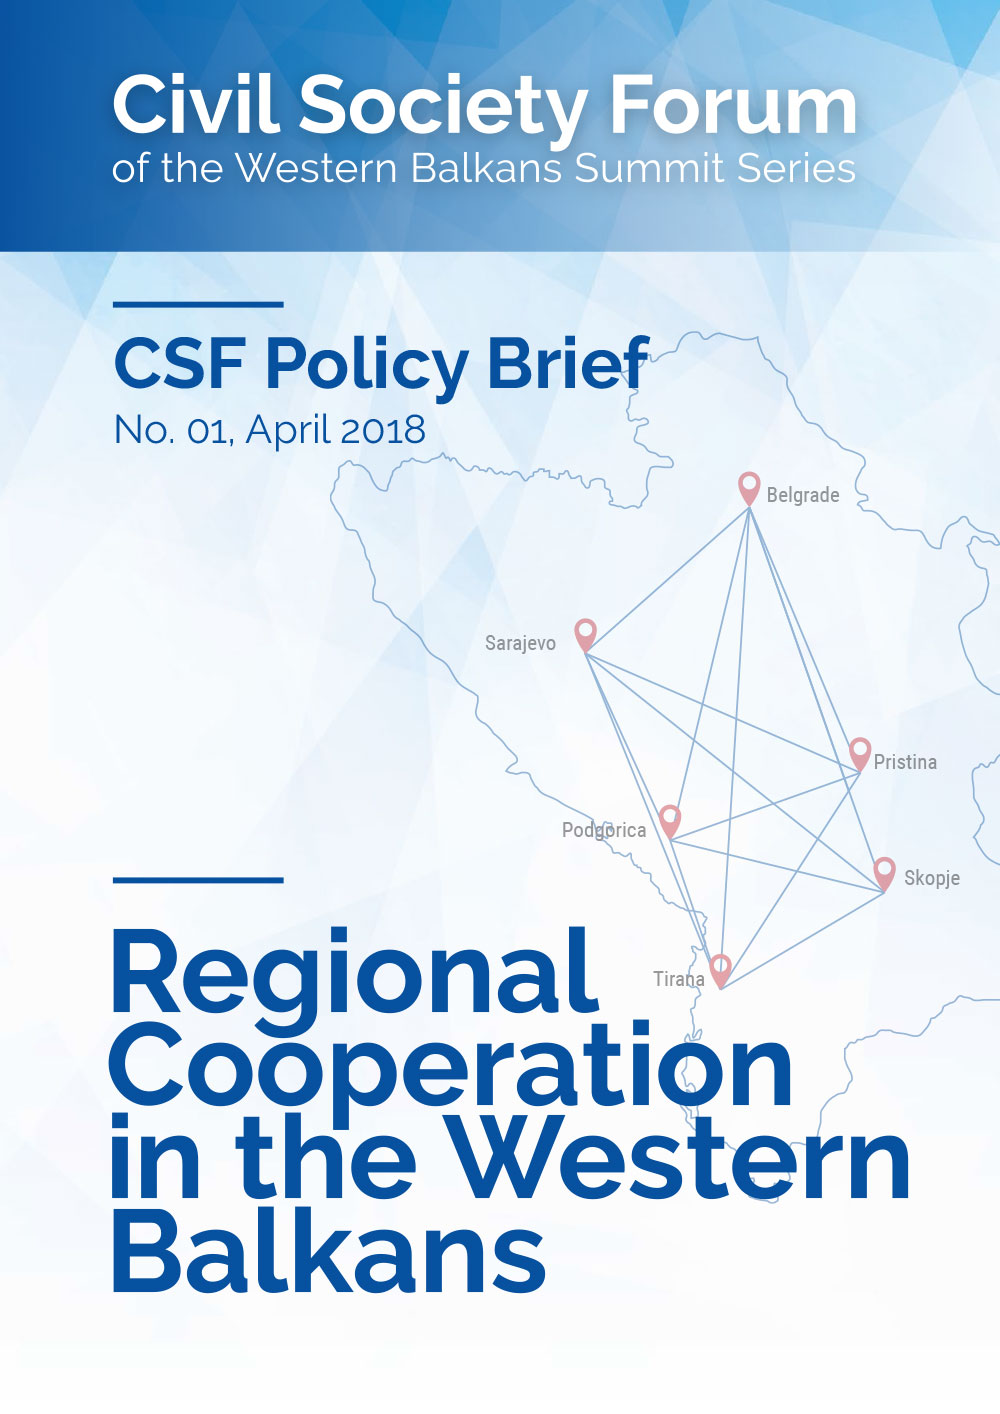 Regional Cooperation in the Western Balkans